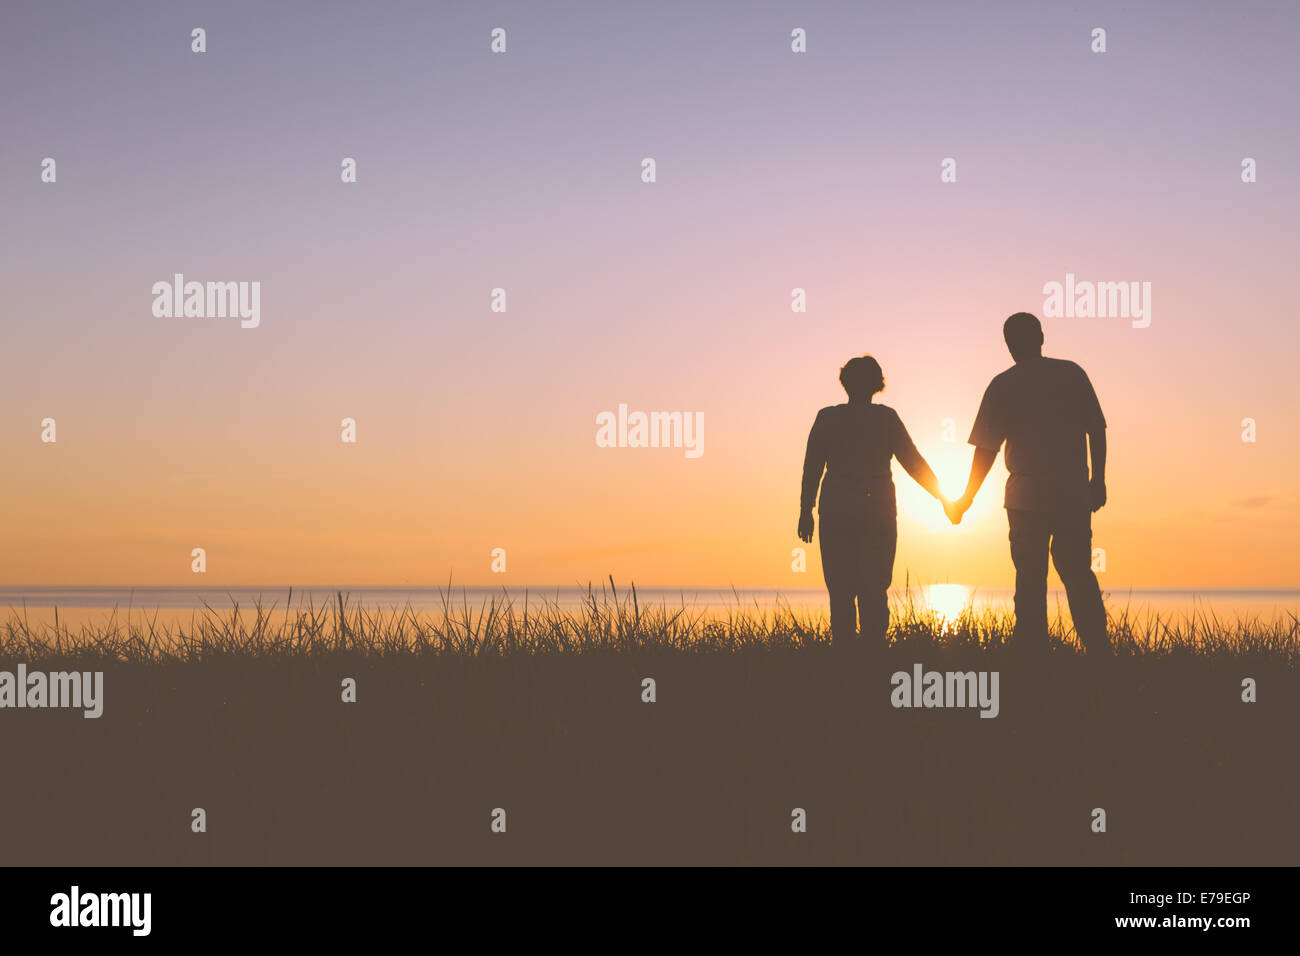 Senior couple holding hands silhouettes - Stock Image